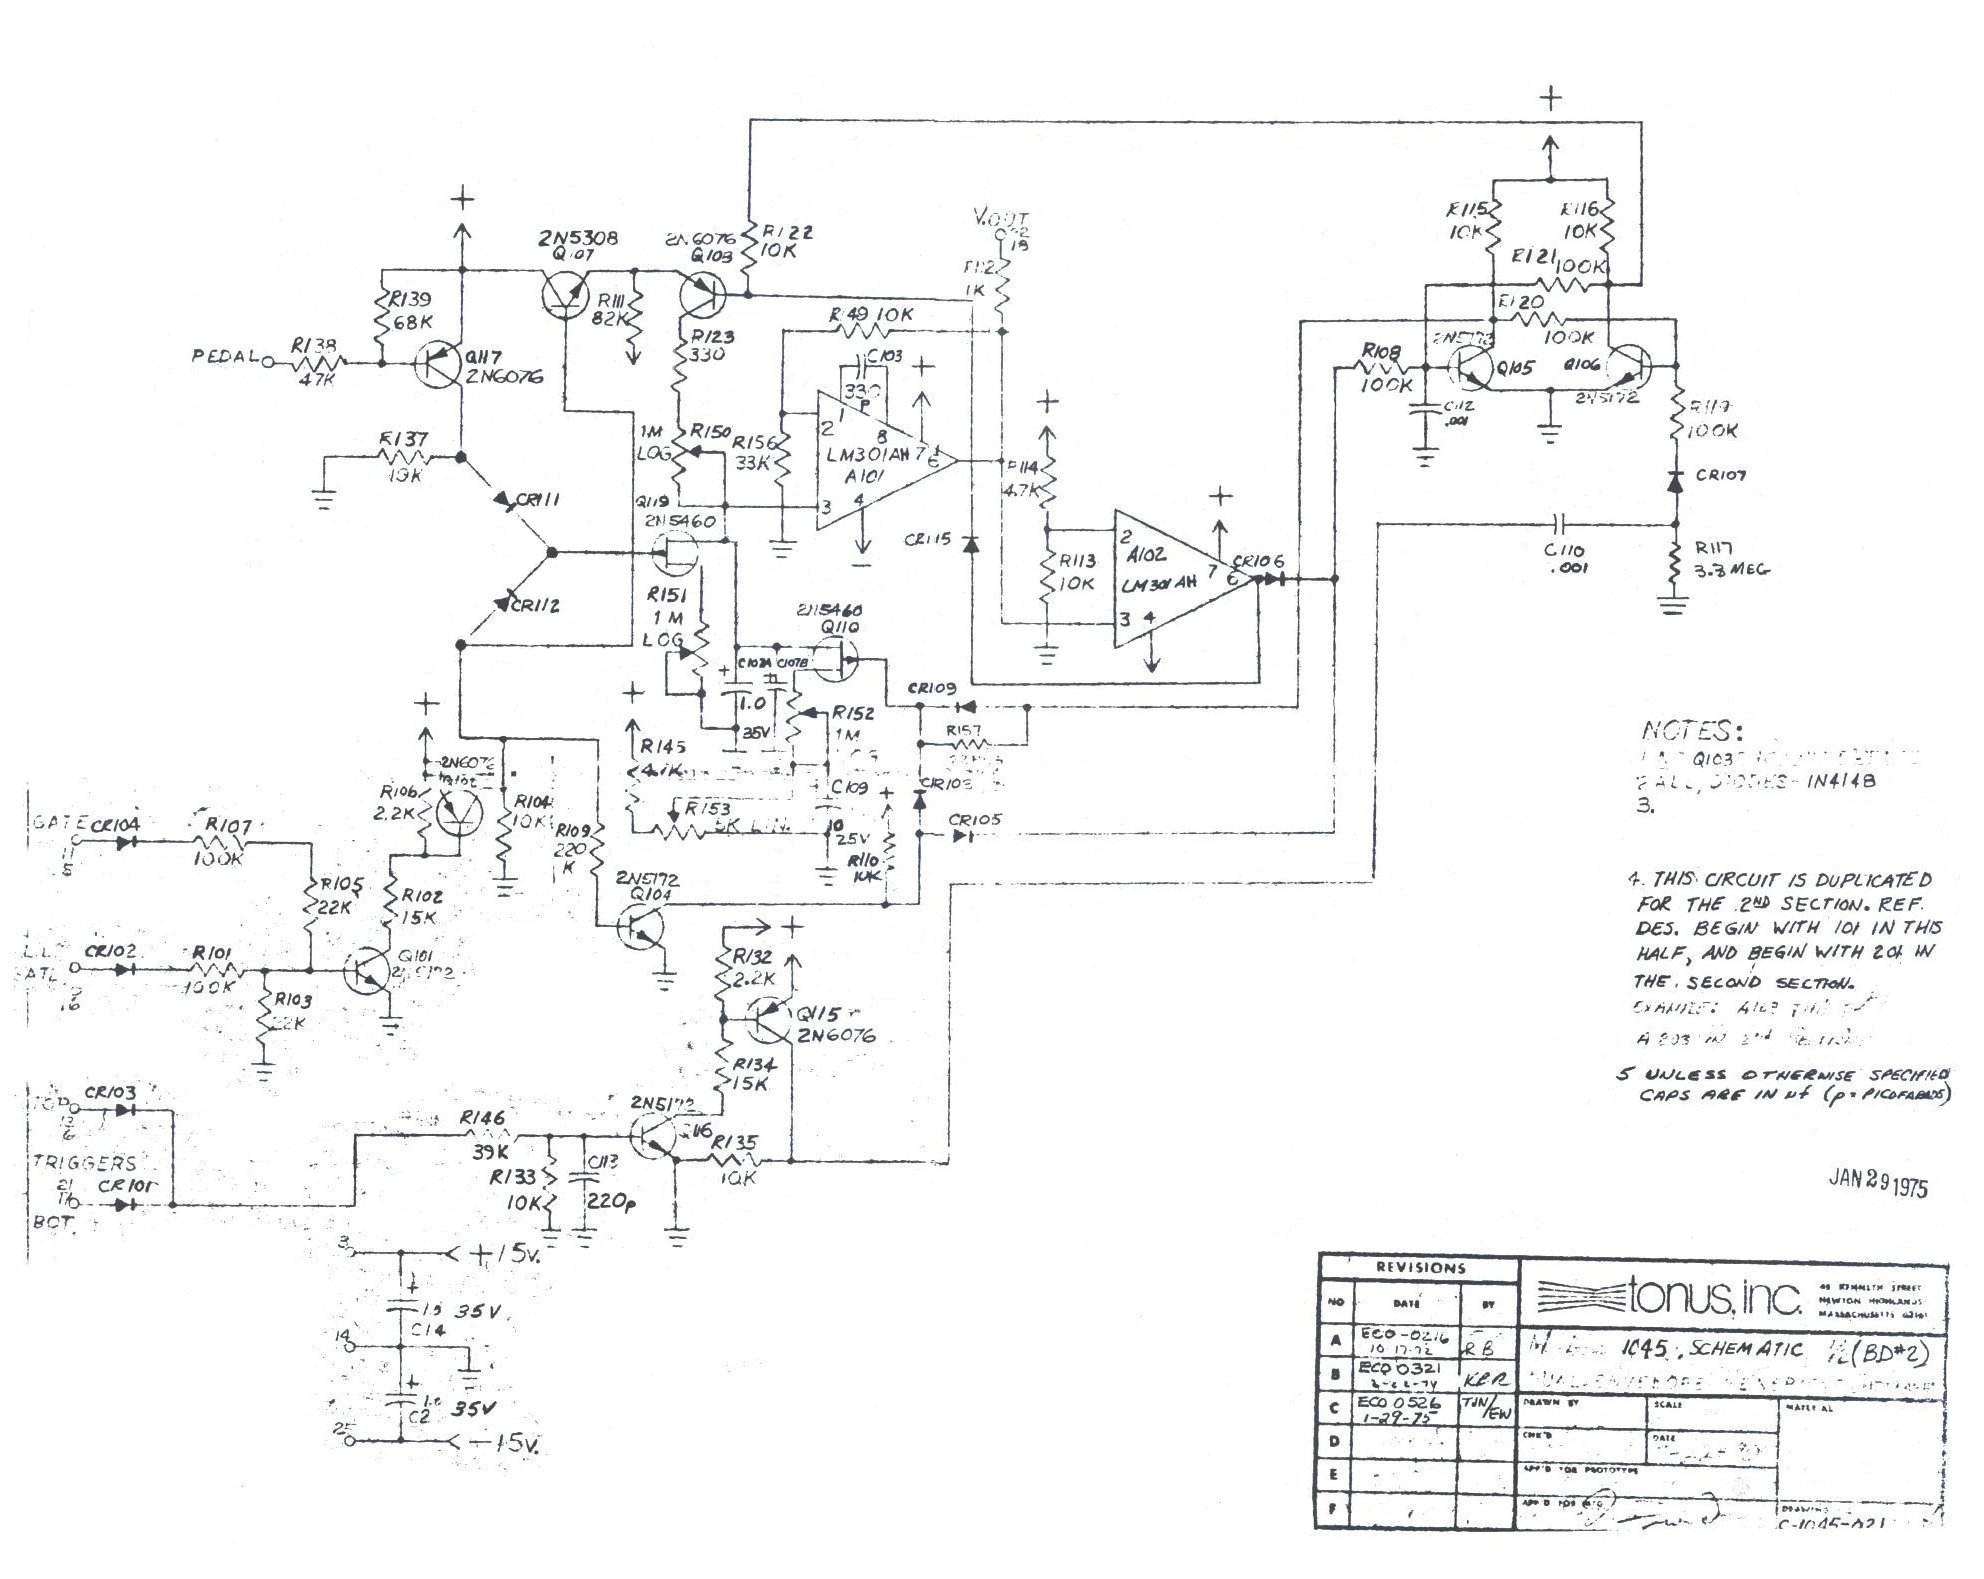 Envelope Schematic Auto Electrical Wiring Diagram The Technology Of Autowahs Envelopecontrolled Filters Arp 1045